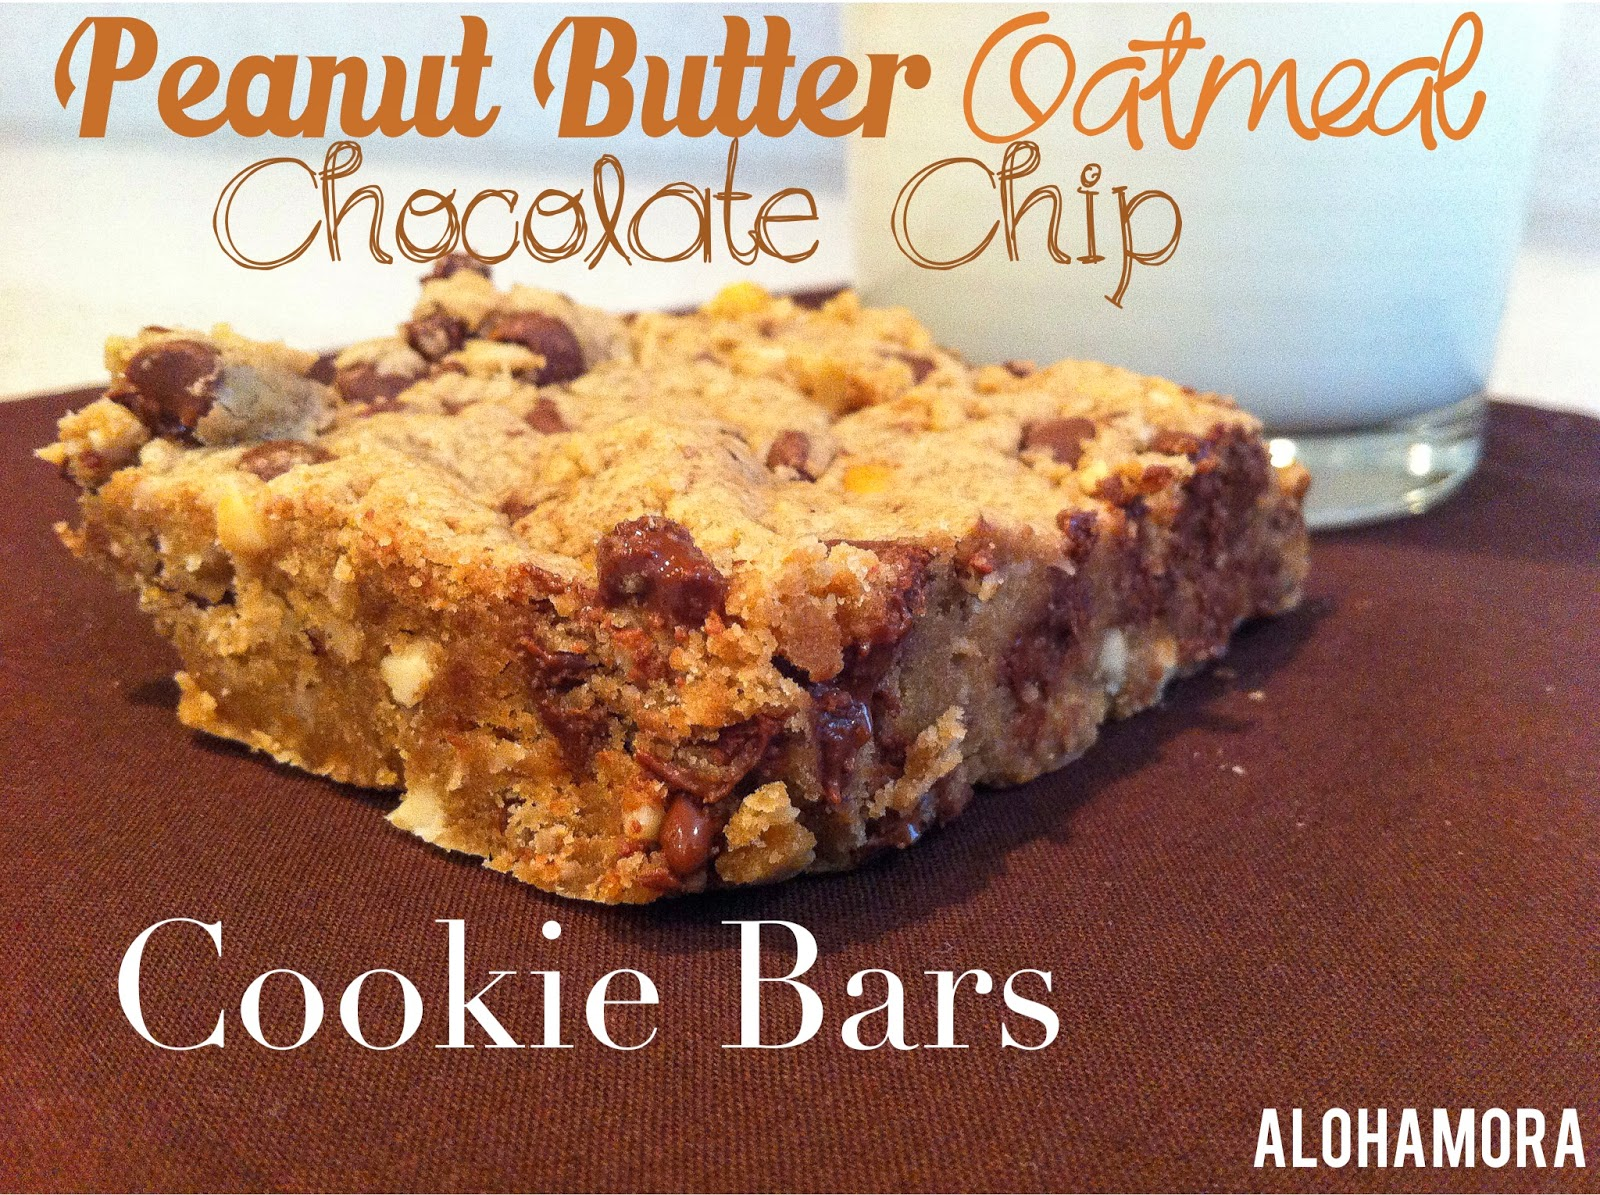 Peanut Butter Oatmeal Chocolate Chip Cookie Bars are hearty, non-greasy (b/c so many cookie bars are greasy), and DELICIOUS! Alohamora Open a Book http://alohamoraopenabook.blogspot.com/